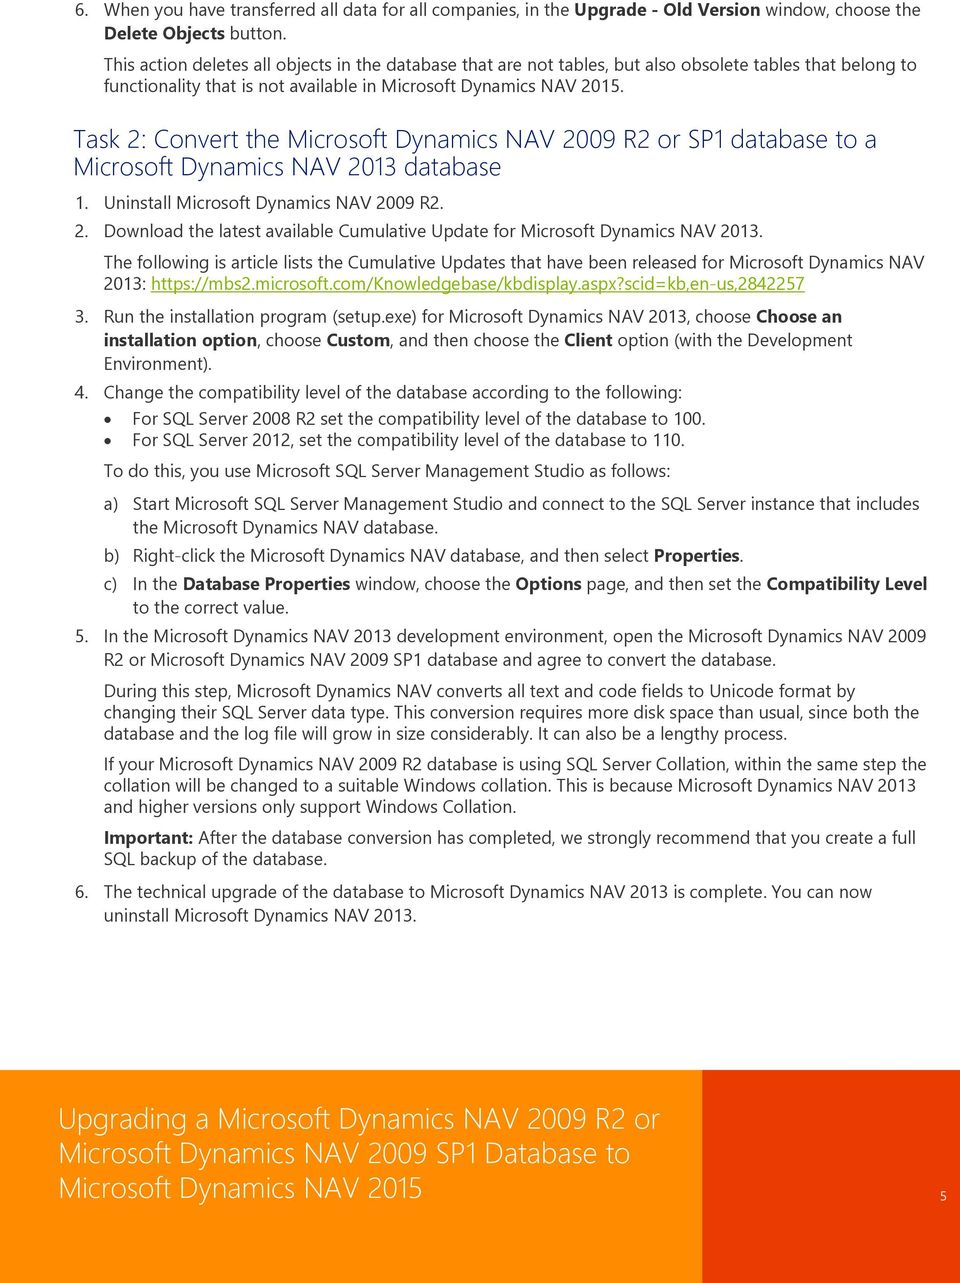 Microsoft dynamics nav 2013 r2 release notes follow-up pdf.